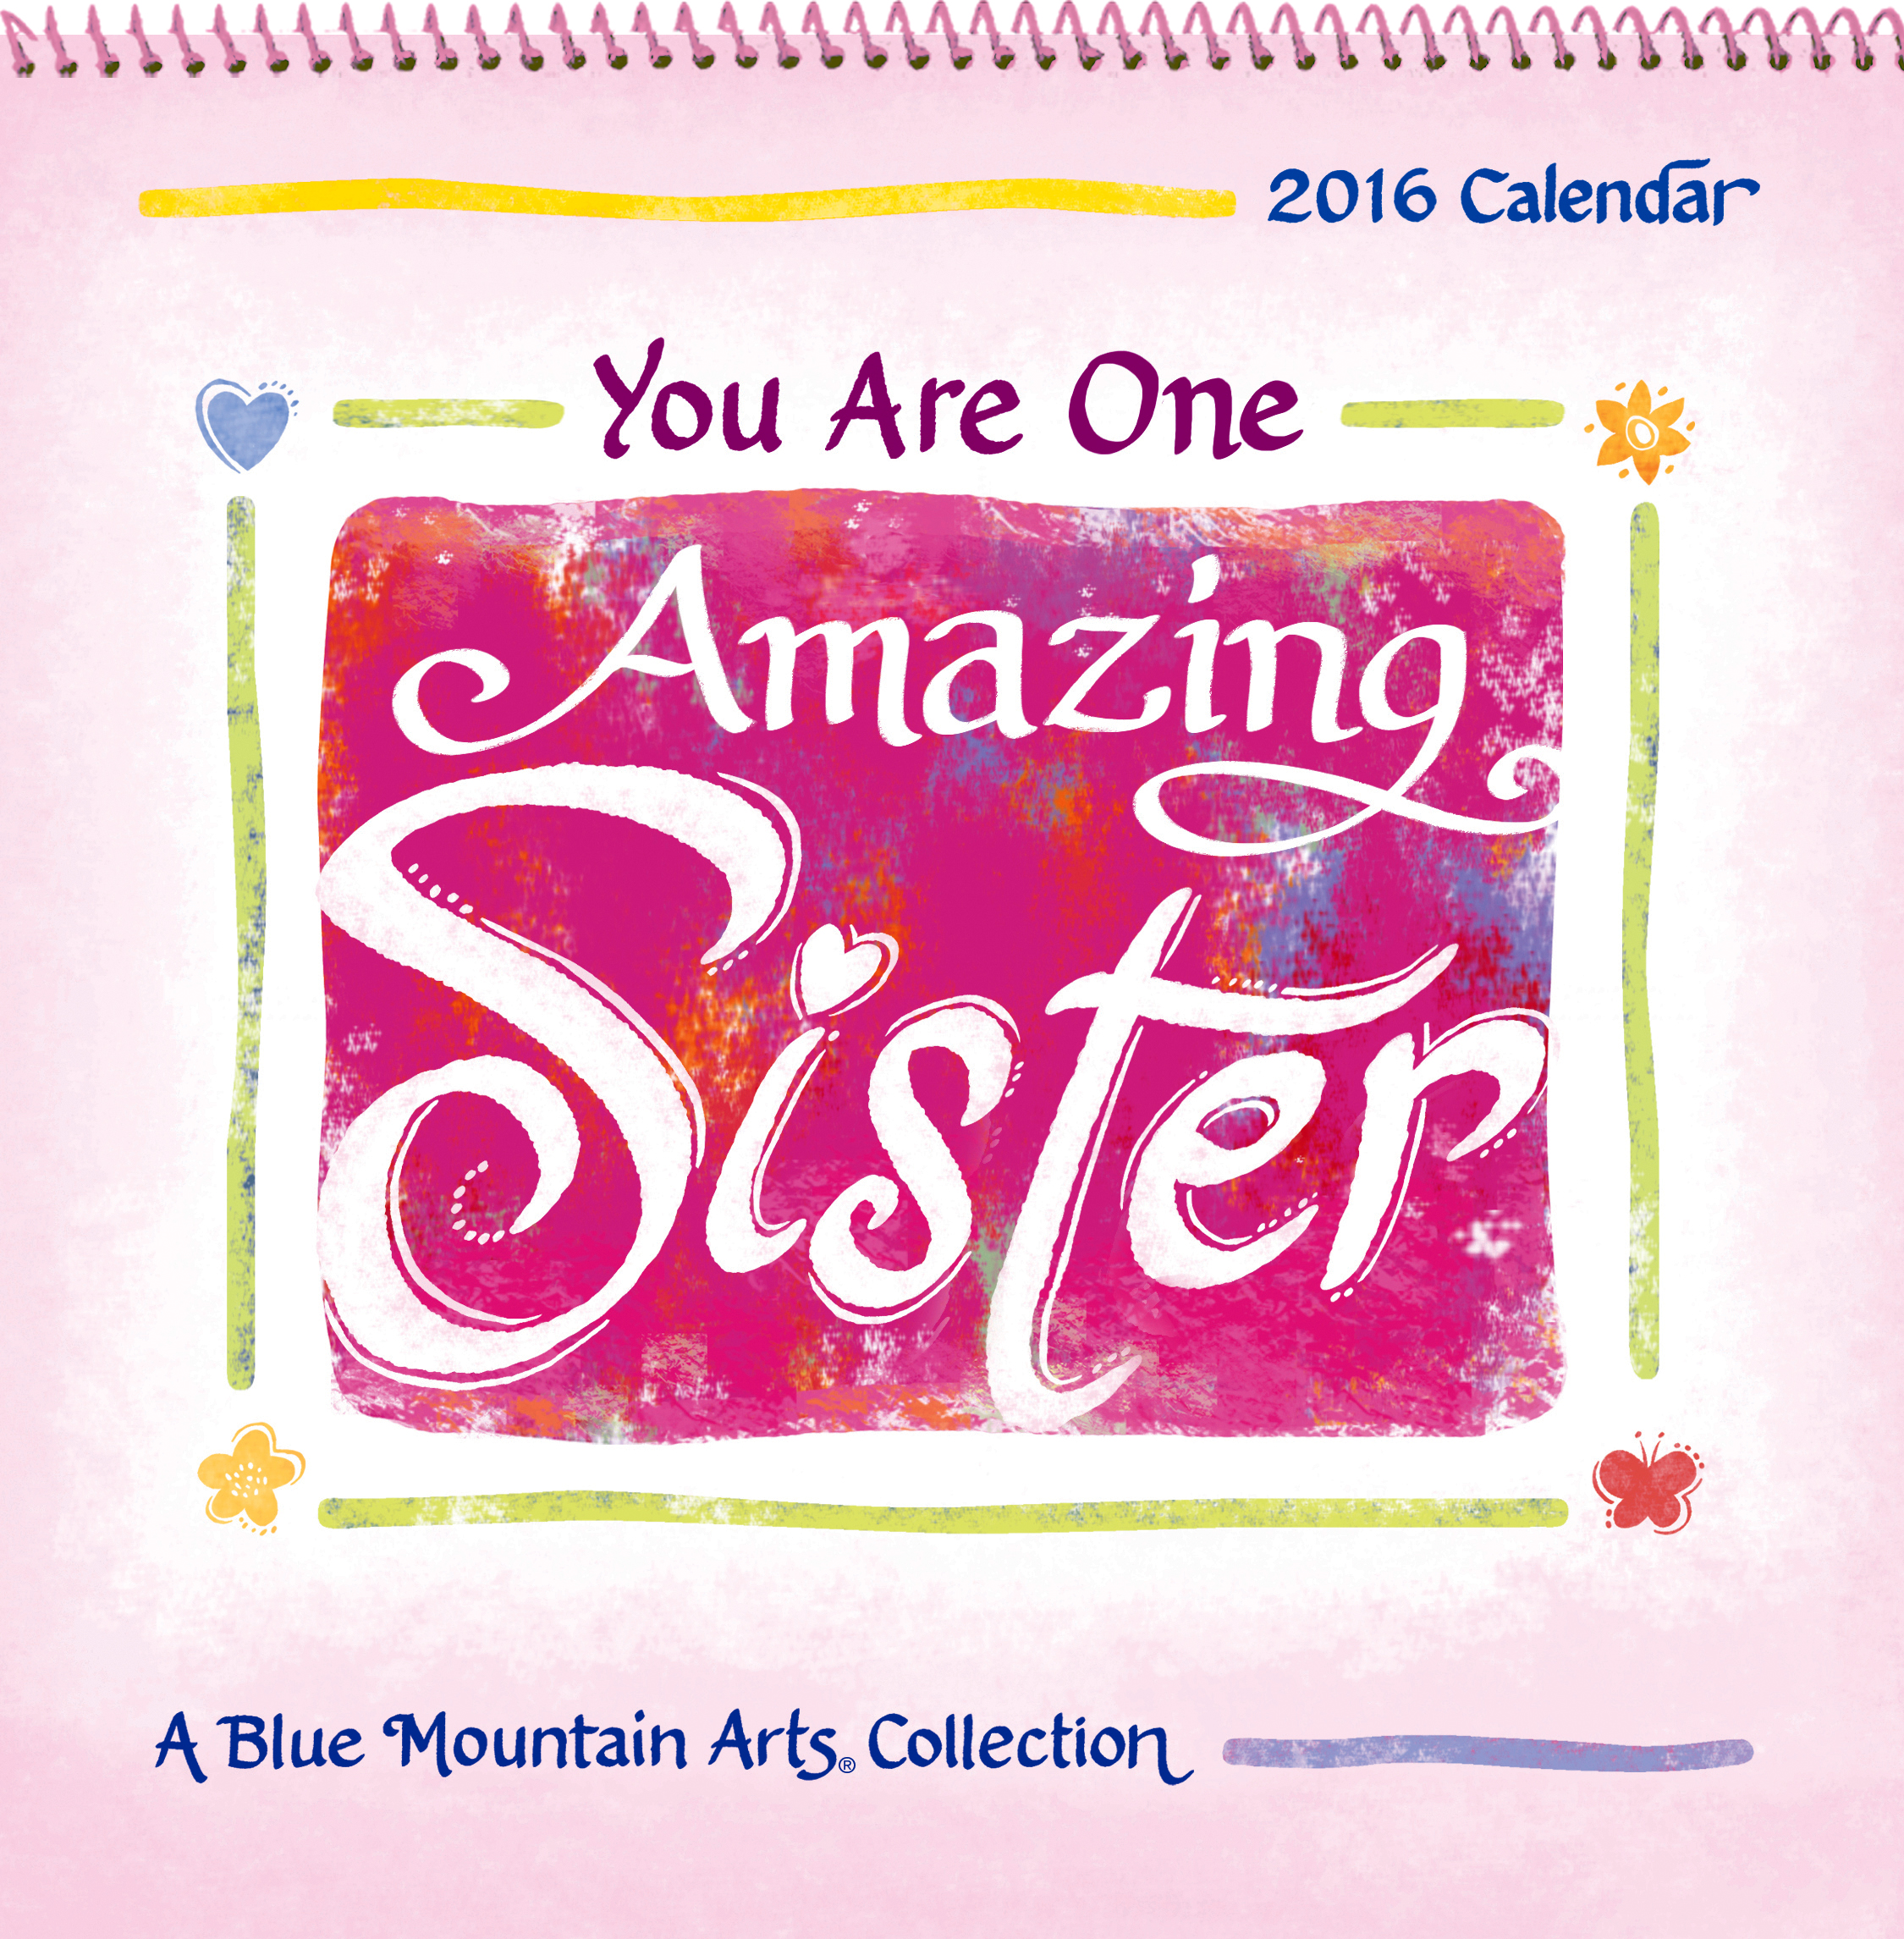 2016 Calendar: You Are One Amazing Sister - Blue Mountain Arts